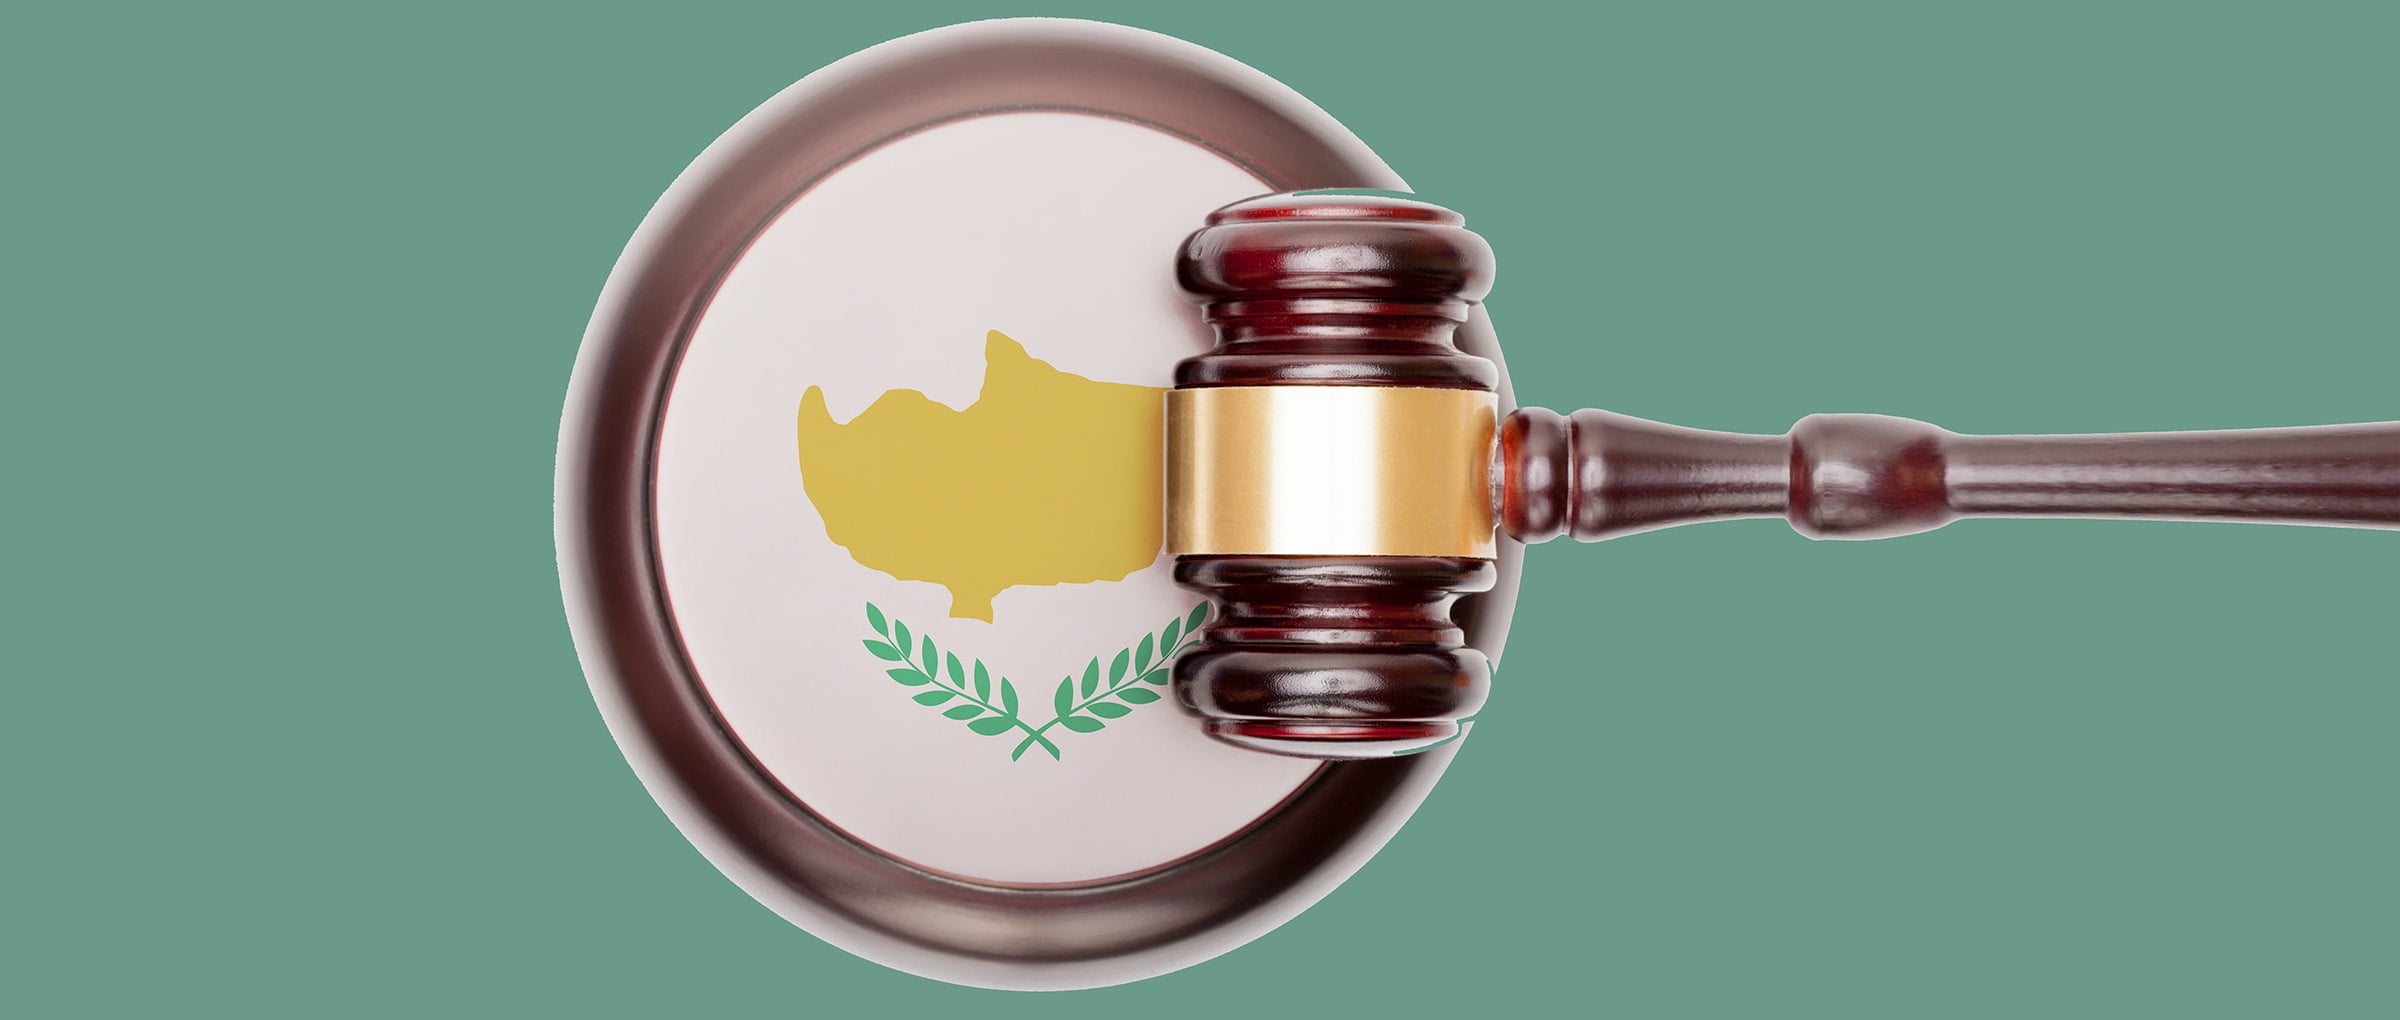 Regulations governing egg and sperm donation in Cyprus